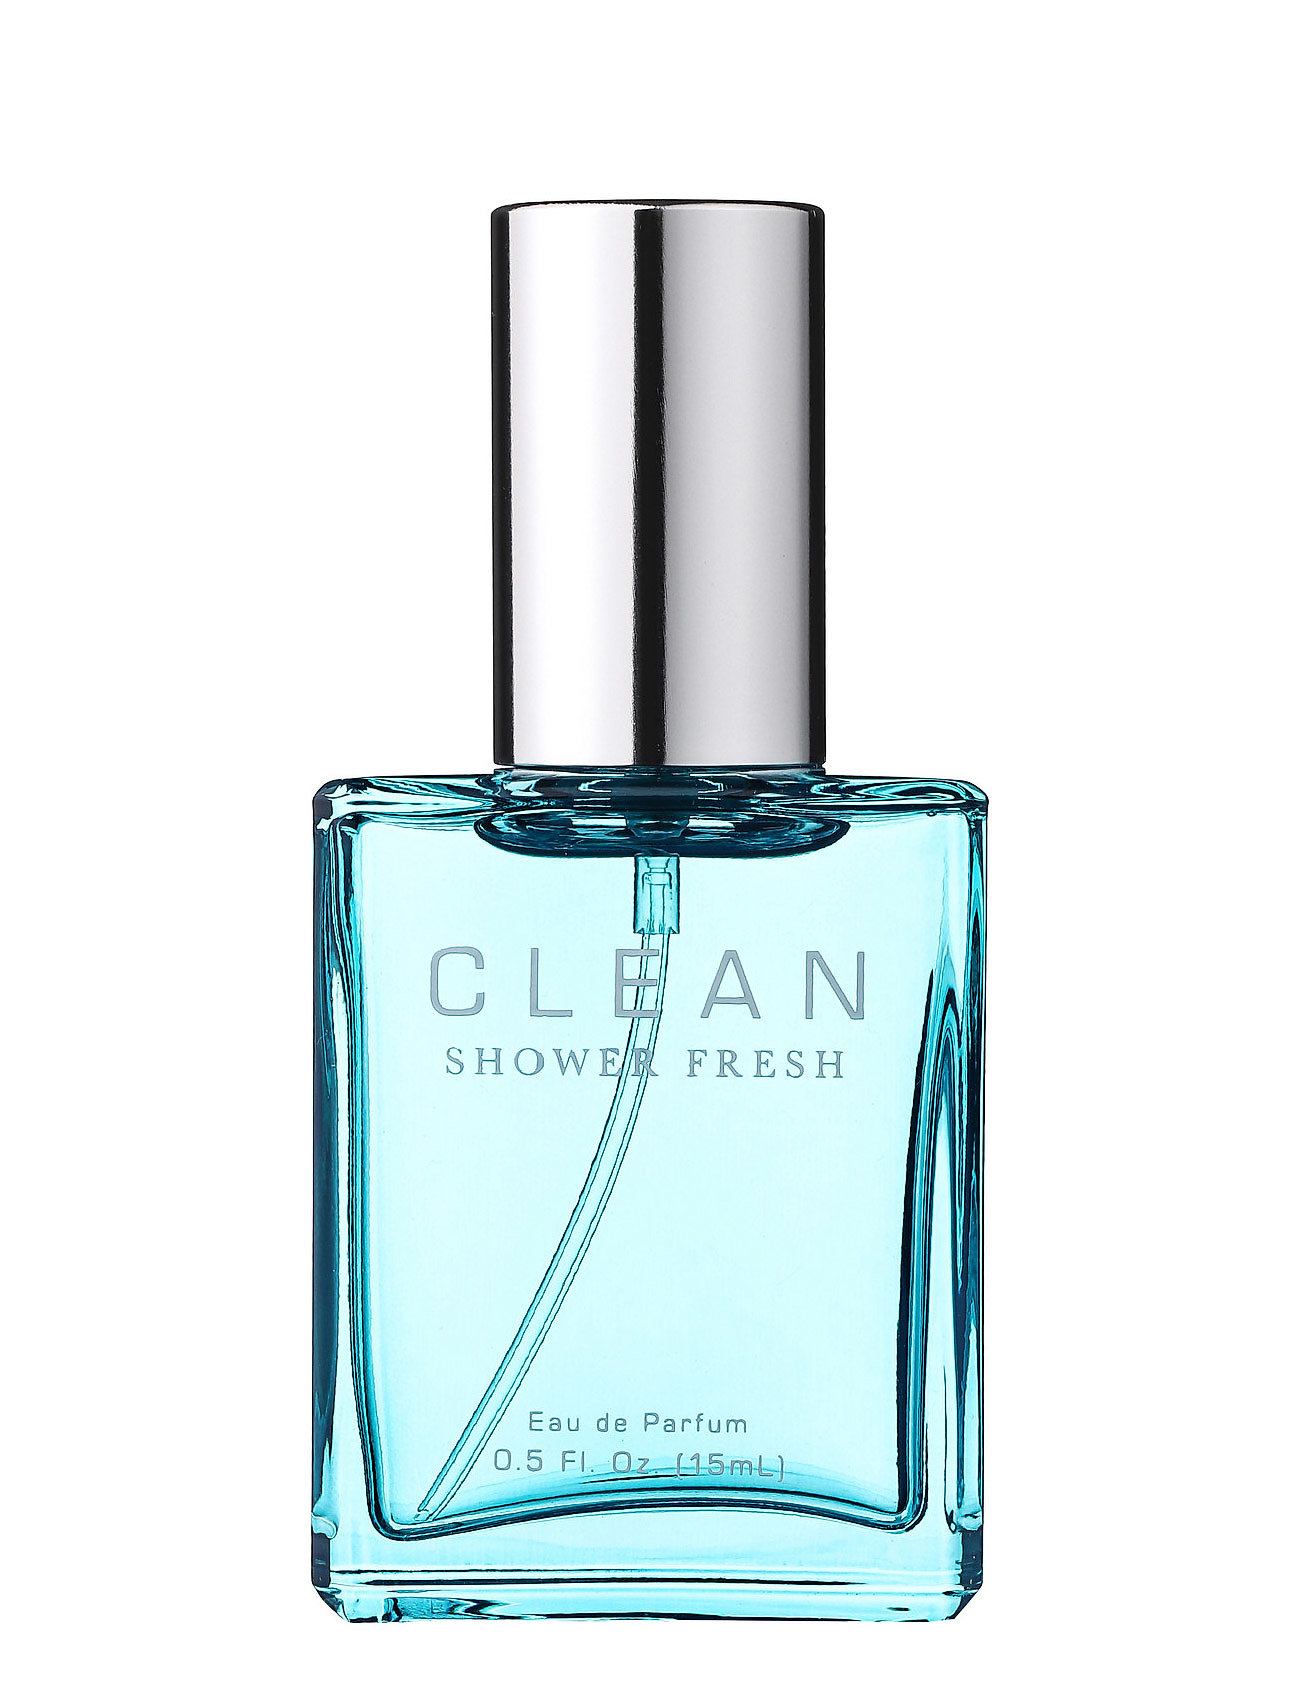 Clean shower fresh edp, 15ml fra clean på boozt.com dk